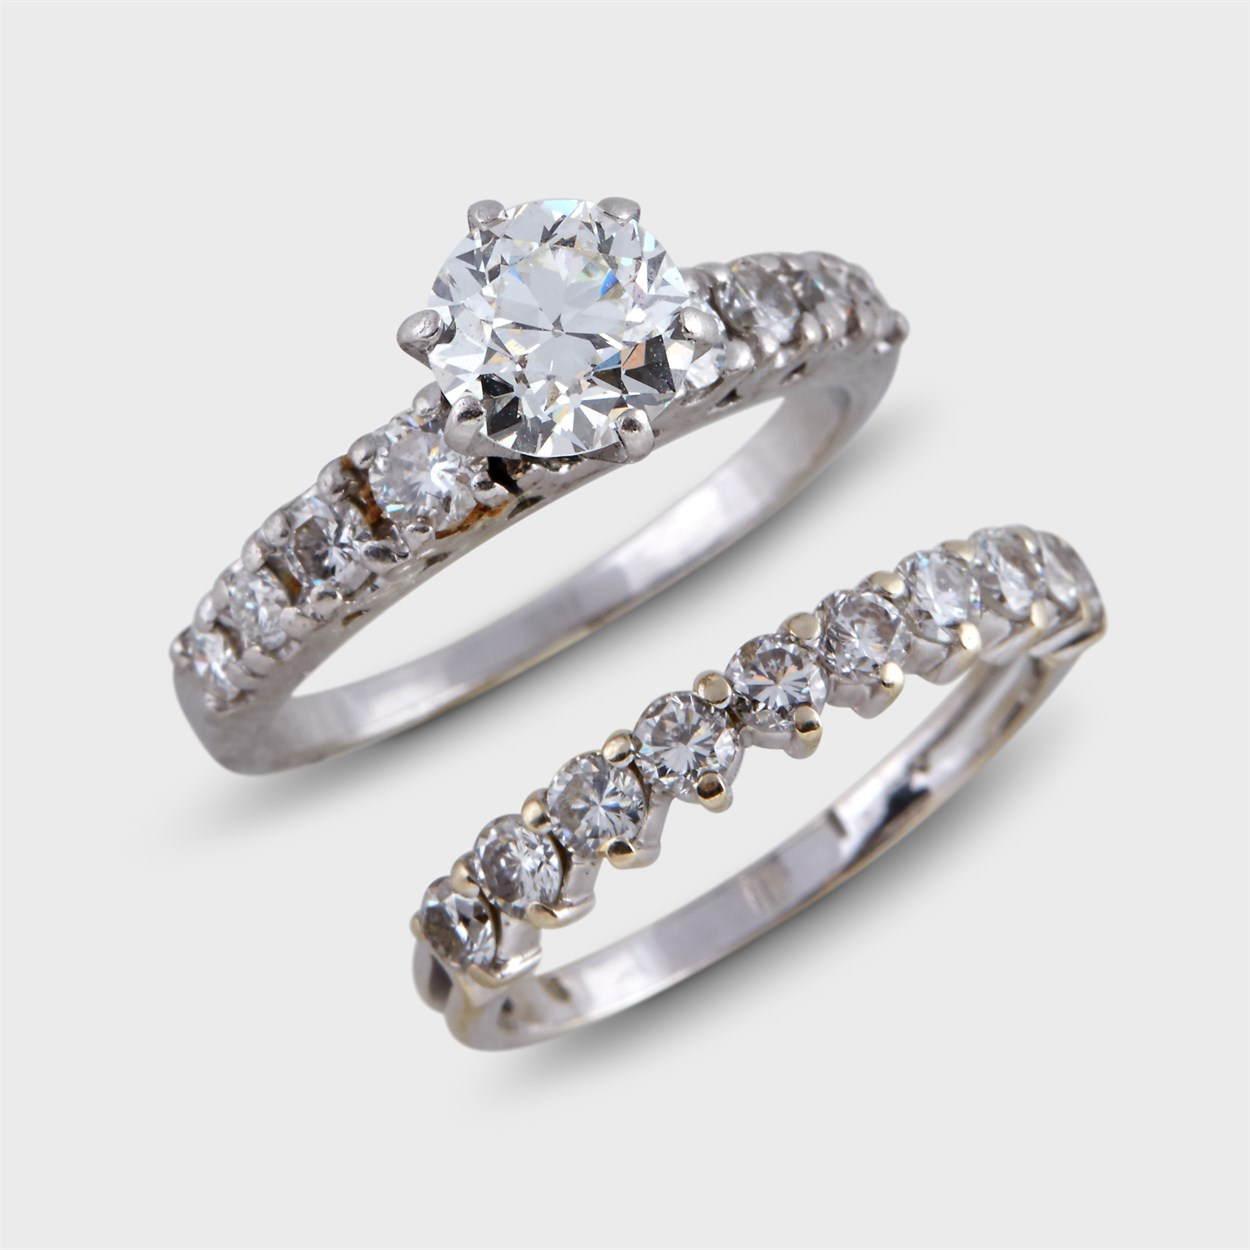 Lot 83 - A diamond and platinum engagement ring and wedding band